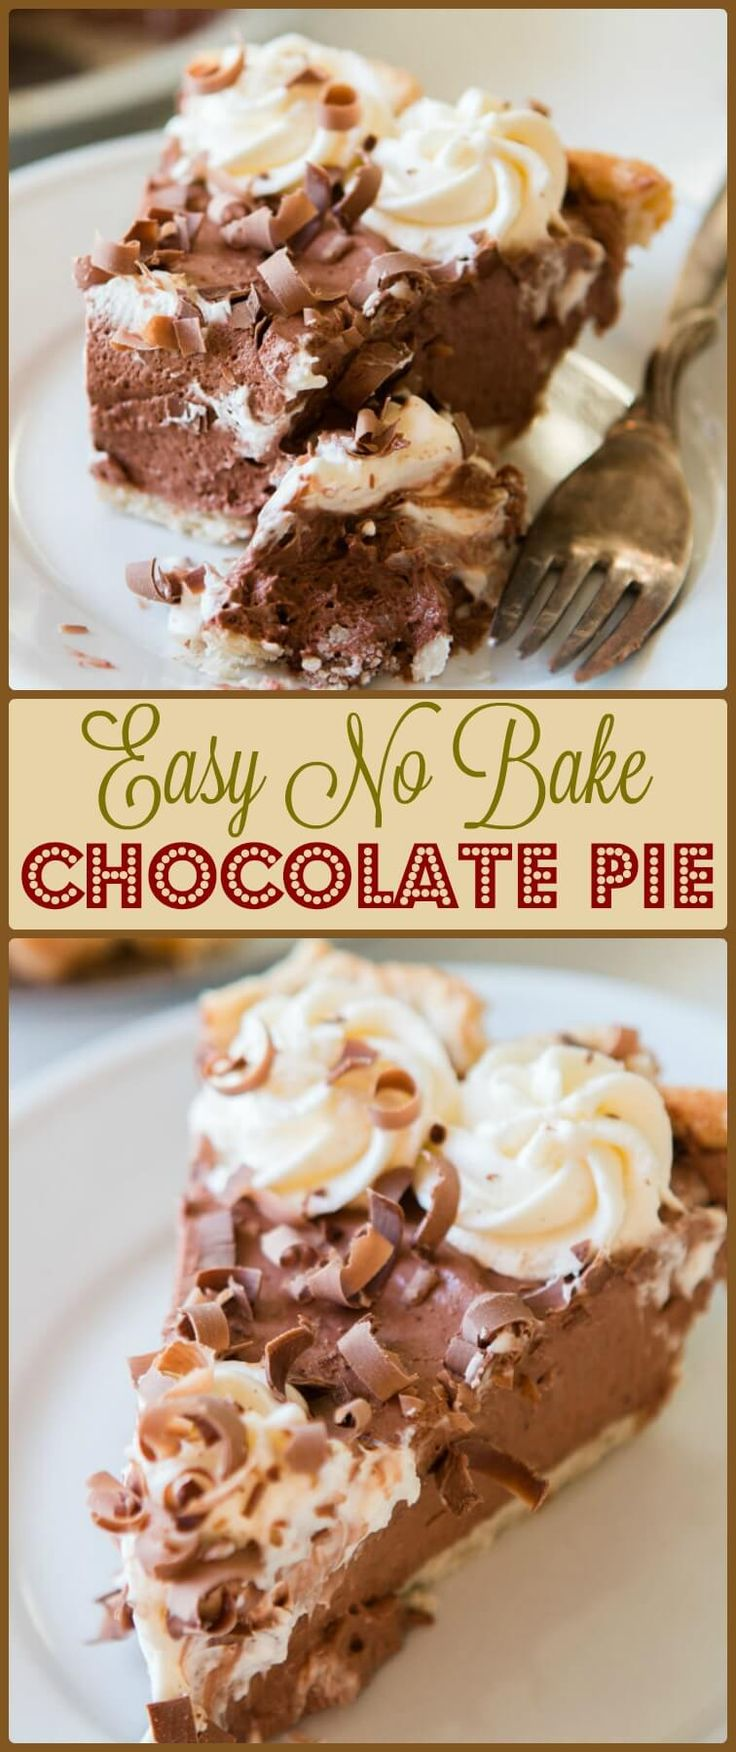 Have you ever wondered how to make chocolate pie at home? Let's learn how to make an easy no bake chocolate pie with chocolate Jell-o pudding to thicken. ohsweetbasil.com